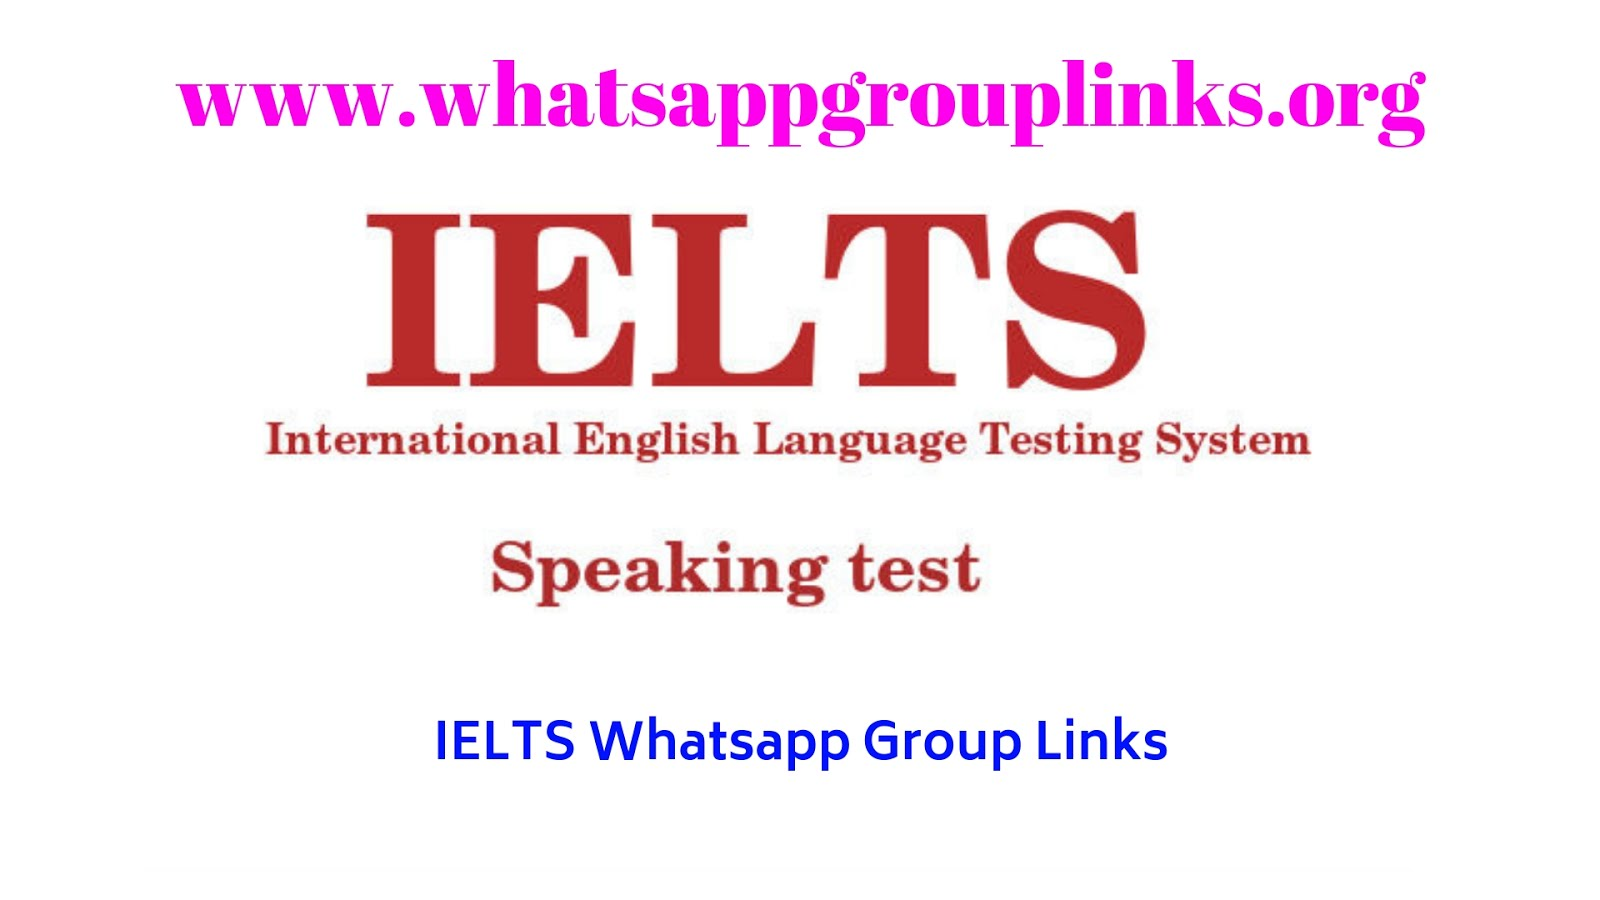 IELTS Whatsapp Group: Join IELTS Whatsapp Group Links List